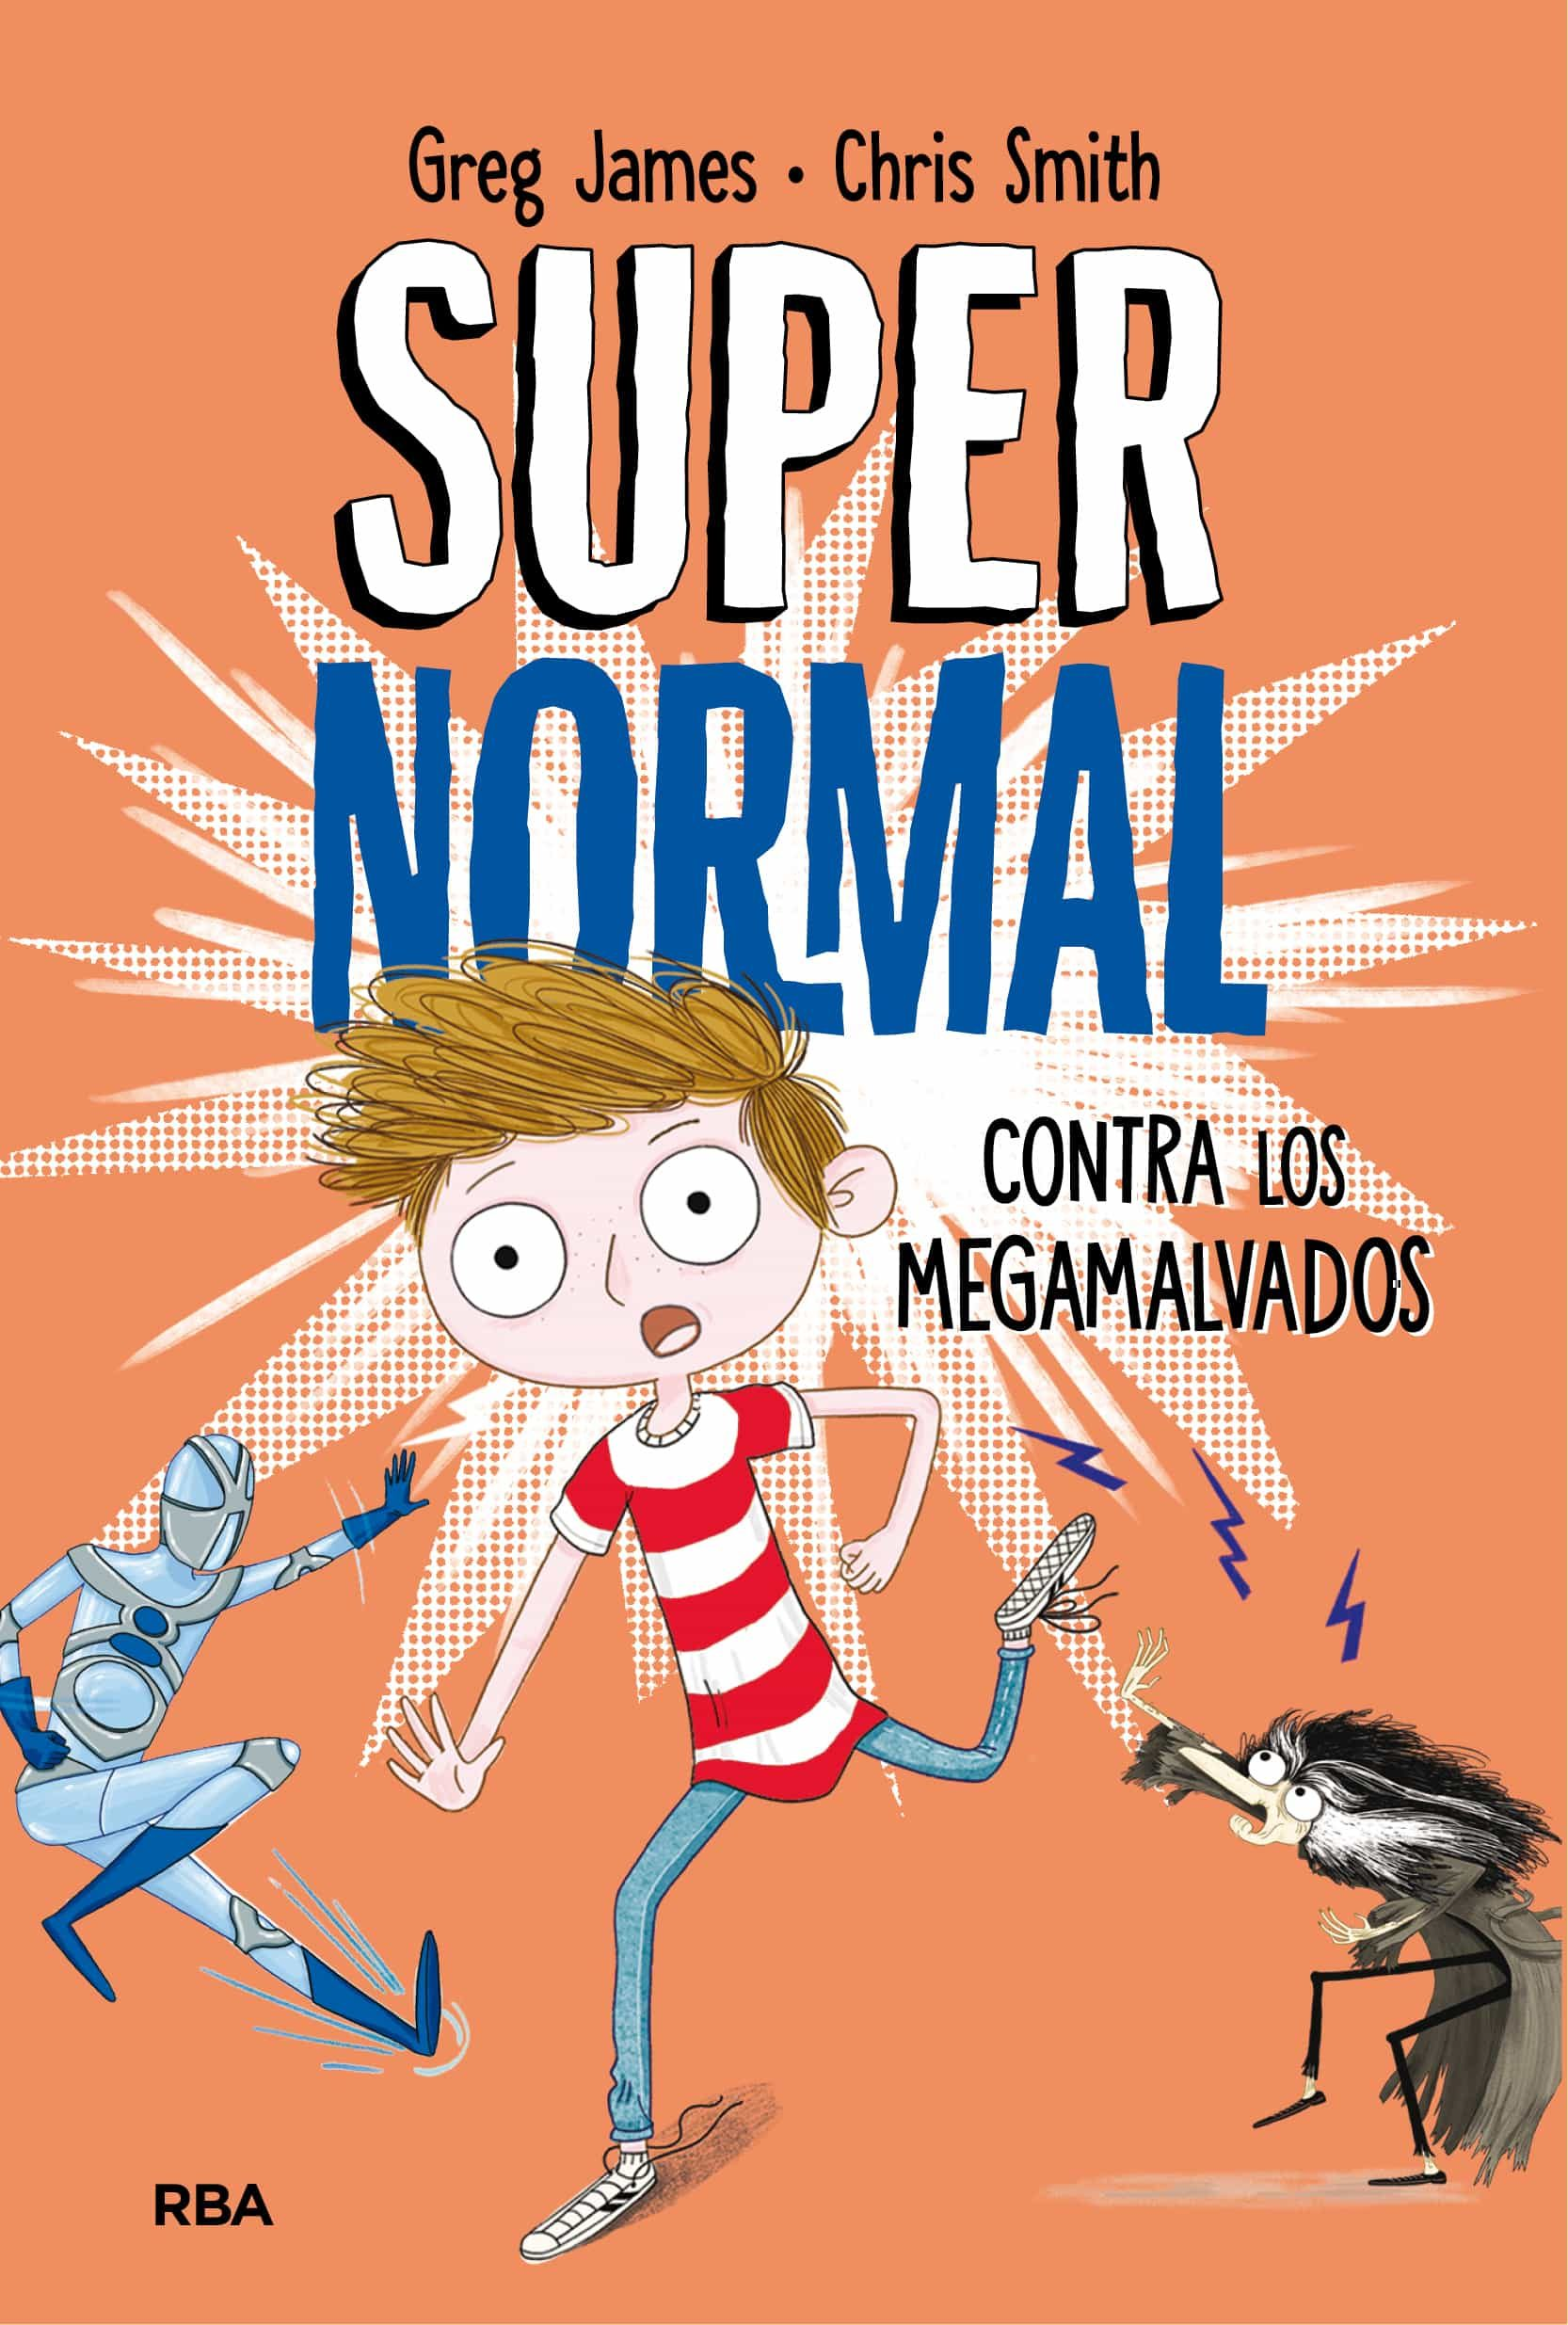 supernormal contra los megamalvados-greg james-chris smith-9788427212961